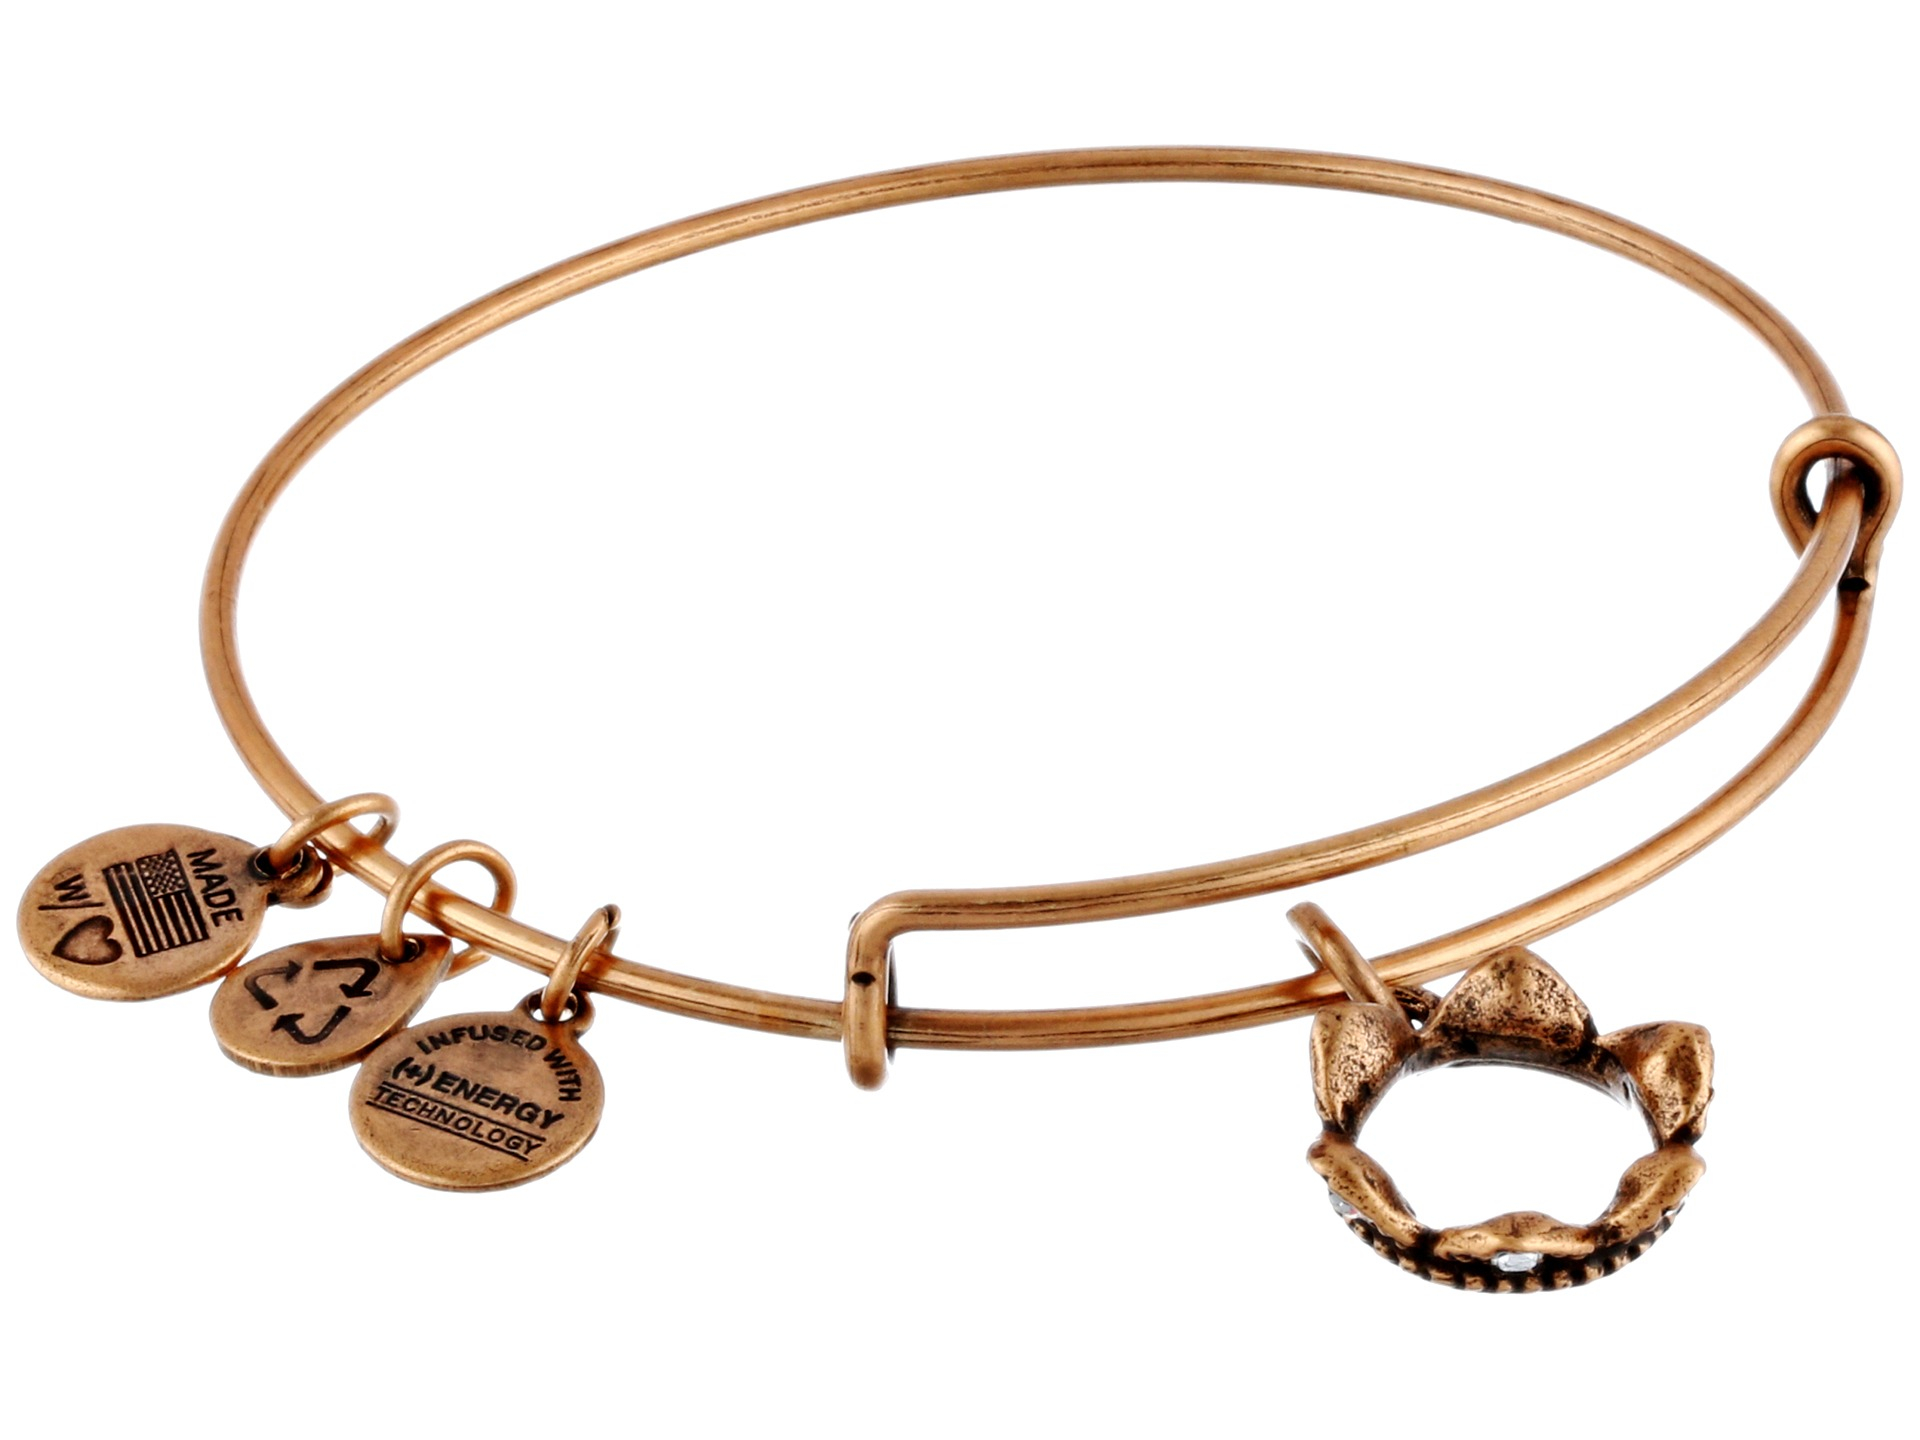 Queen S Crown Charm Bangle